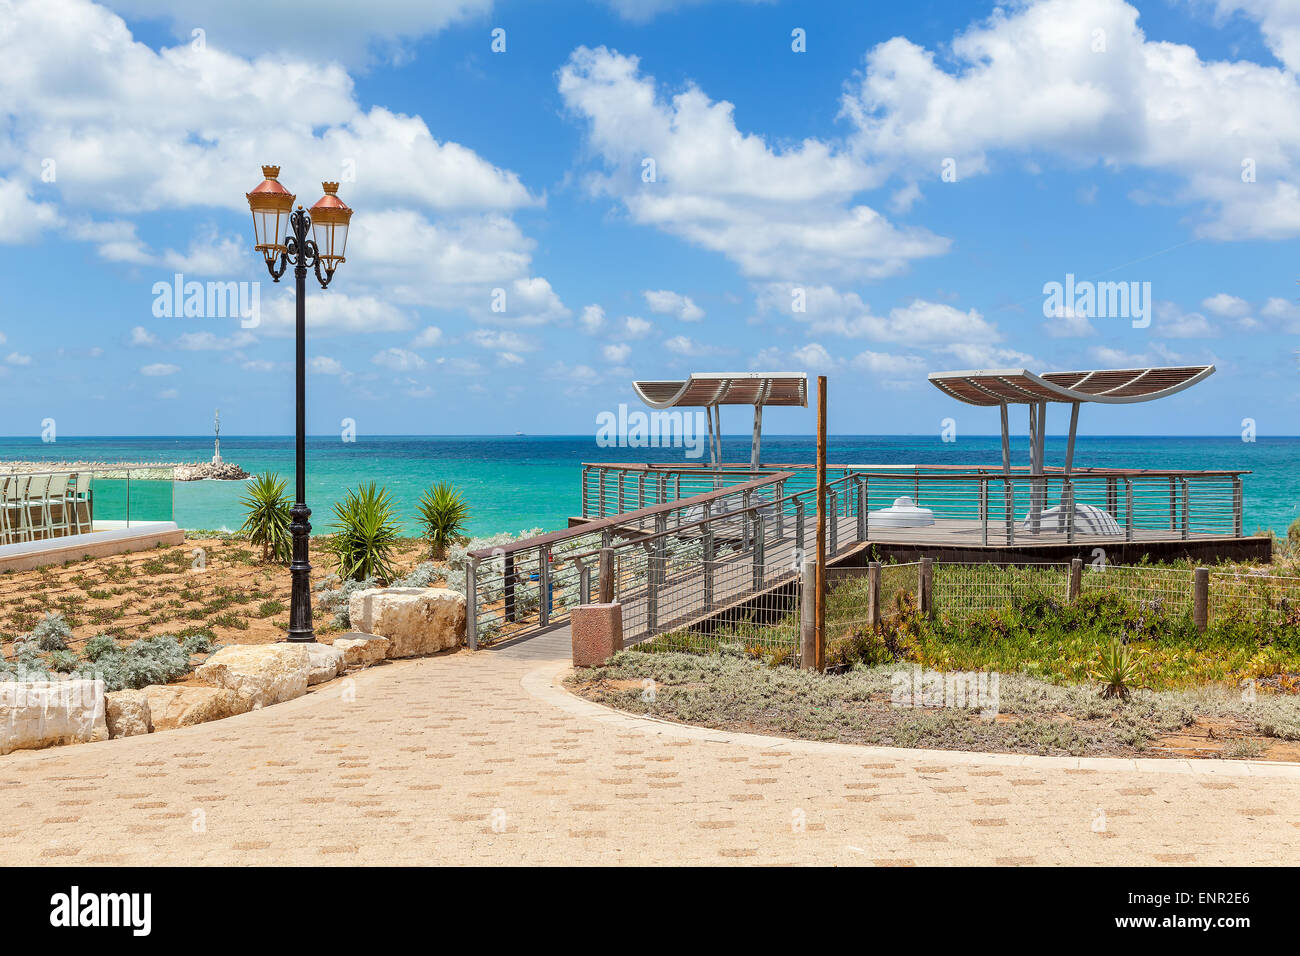 Viewpoint and lamppost on promenade overlooking Mediterranean sea under blue sky with white clouds in Ashqelon, - Stock Image